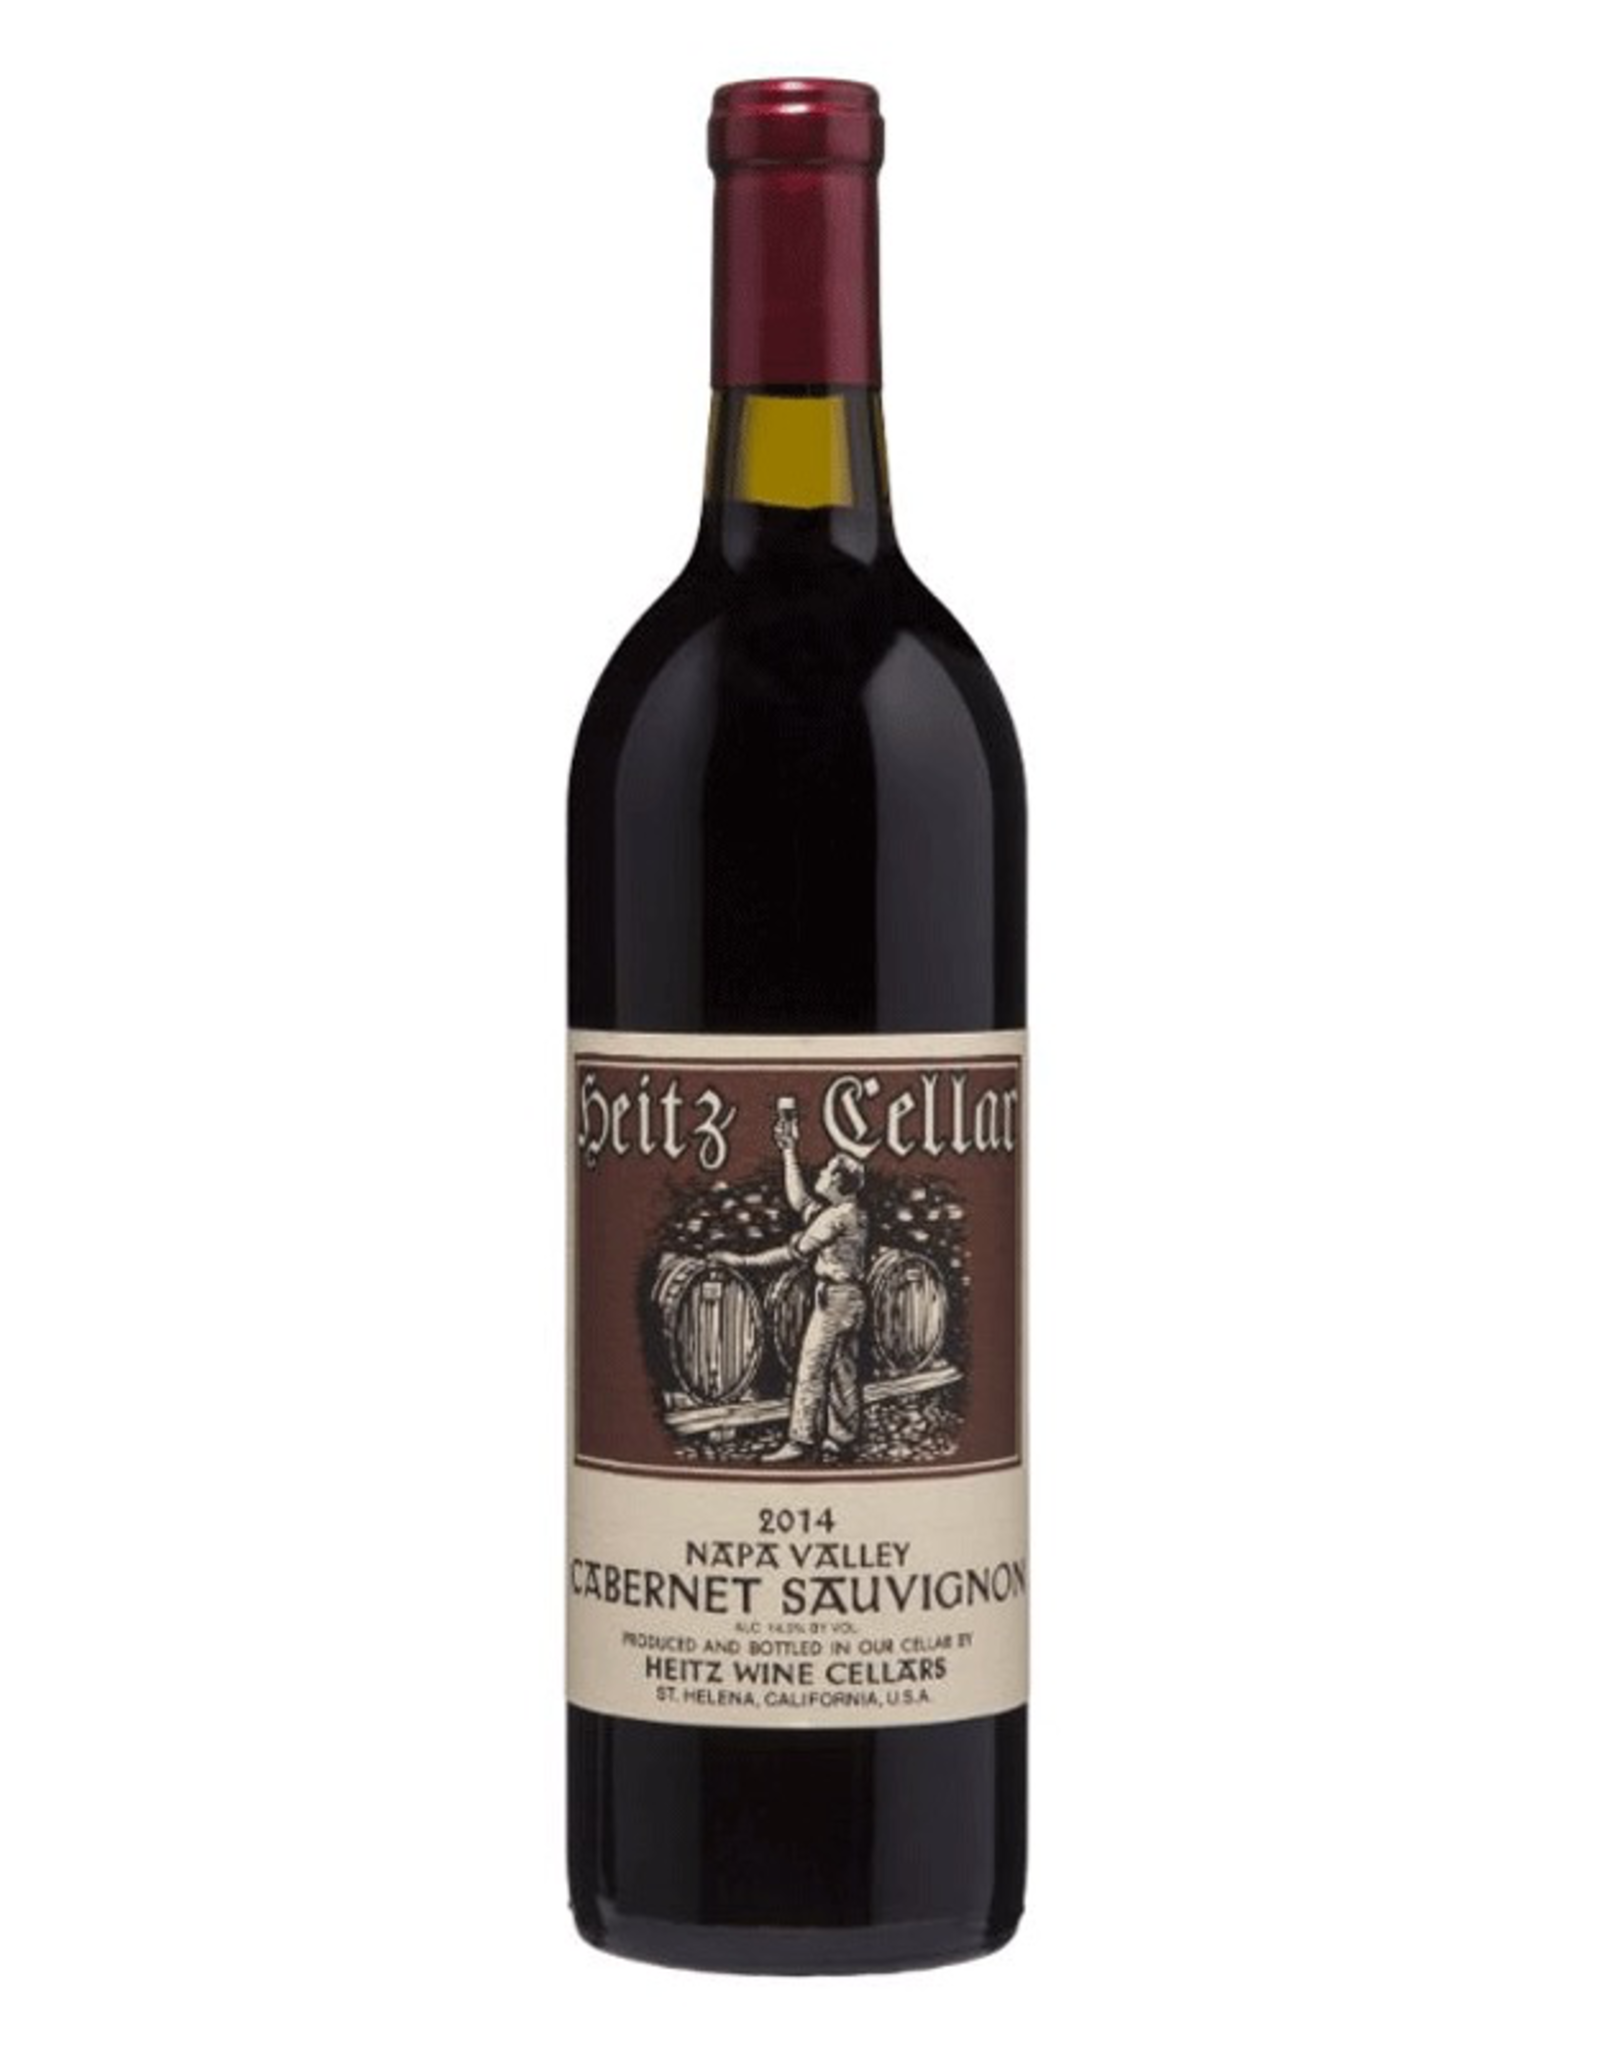 Red Wine 2015, Heitz Cellars, Cabernet Sauvignon, Multi AVA, Napa Valley, California, 14.5% Alc, Ctna